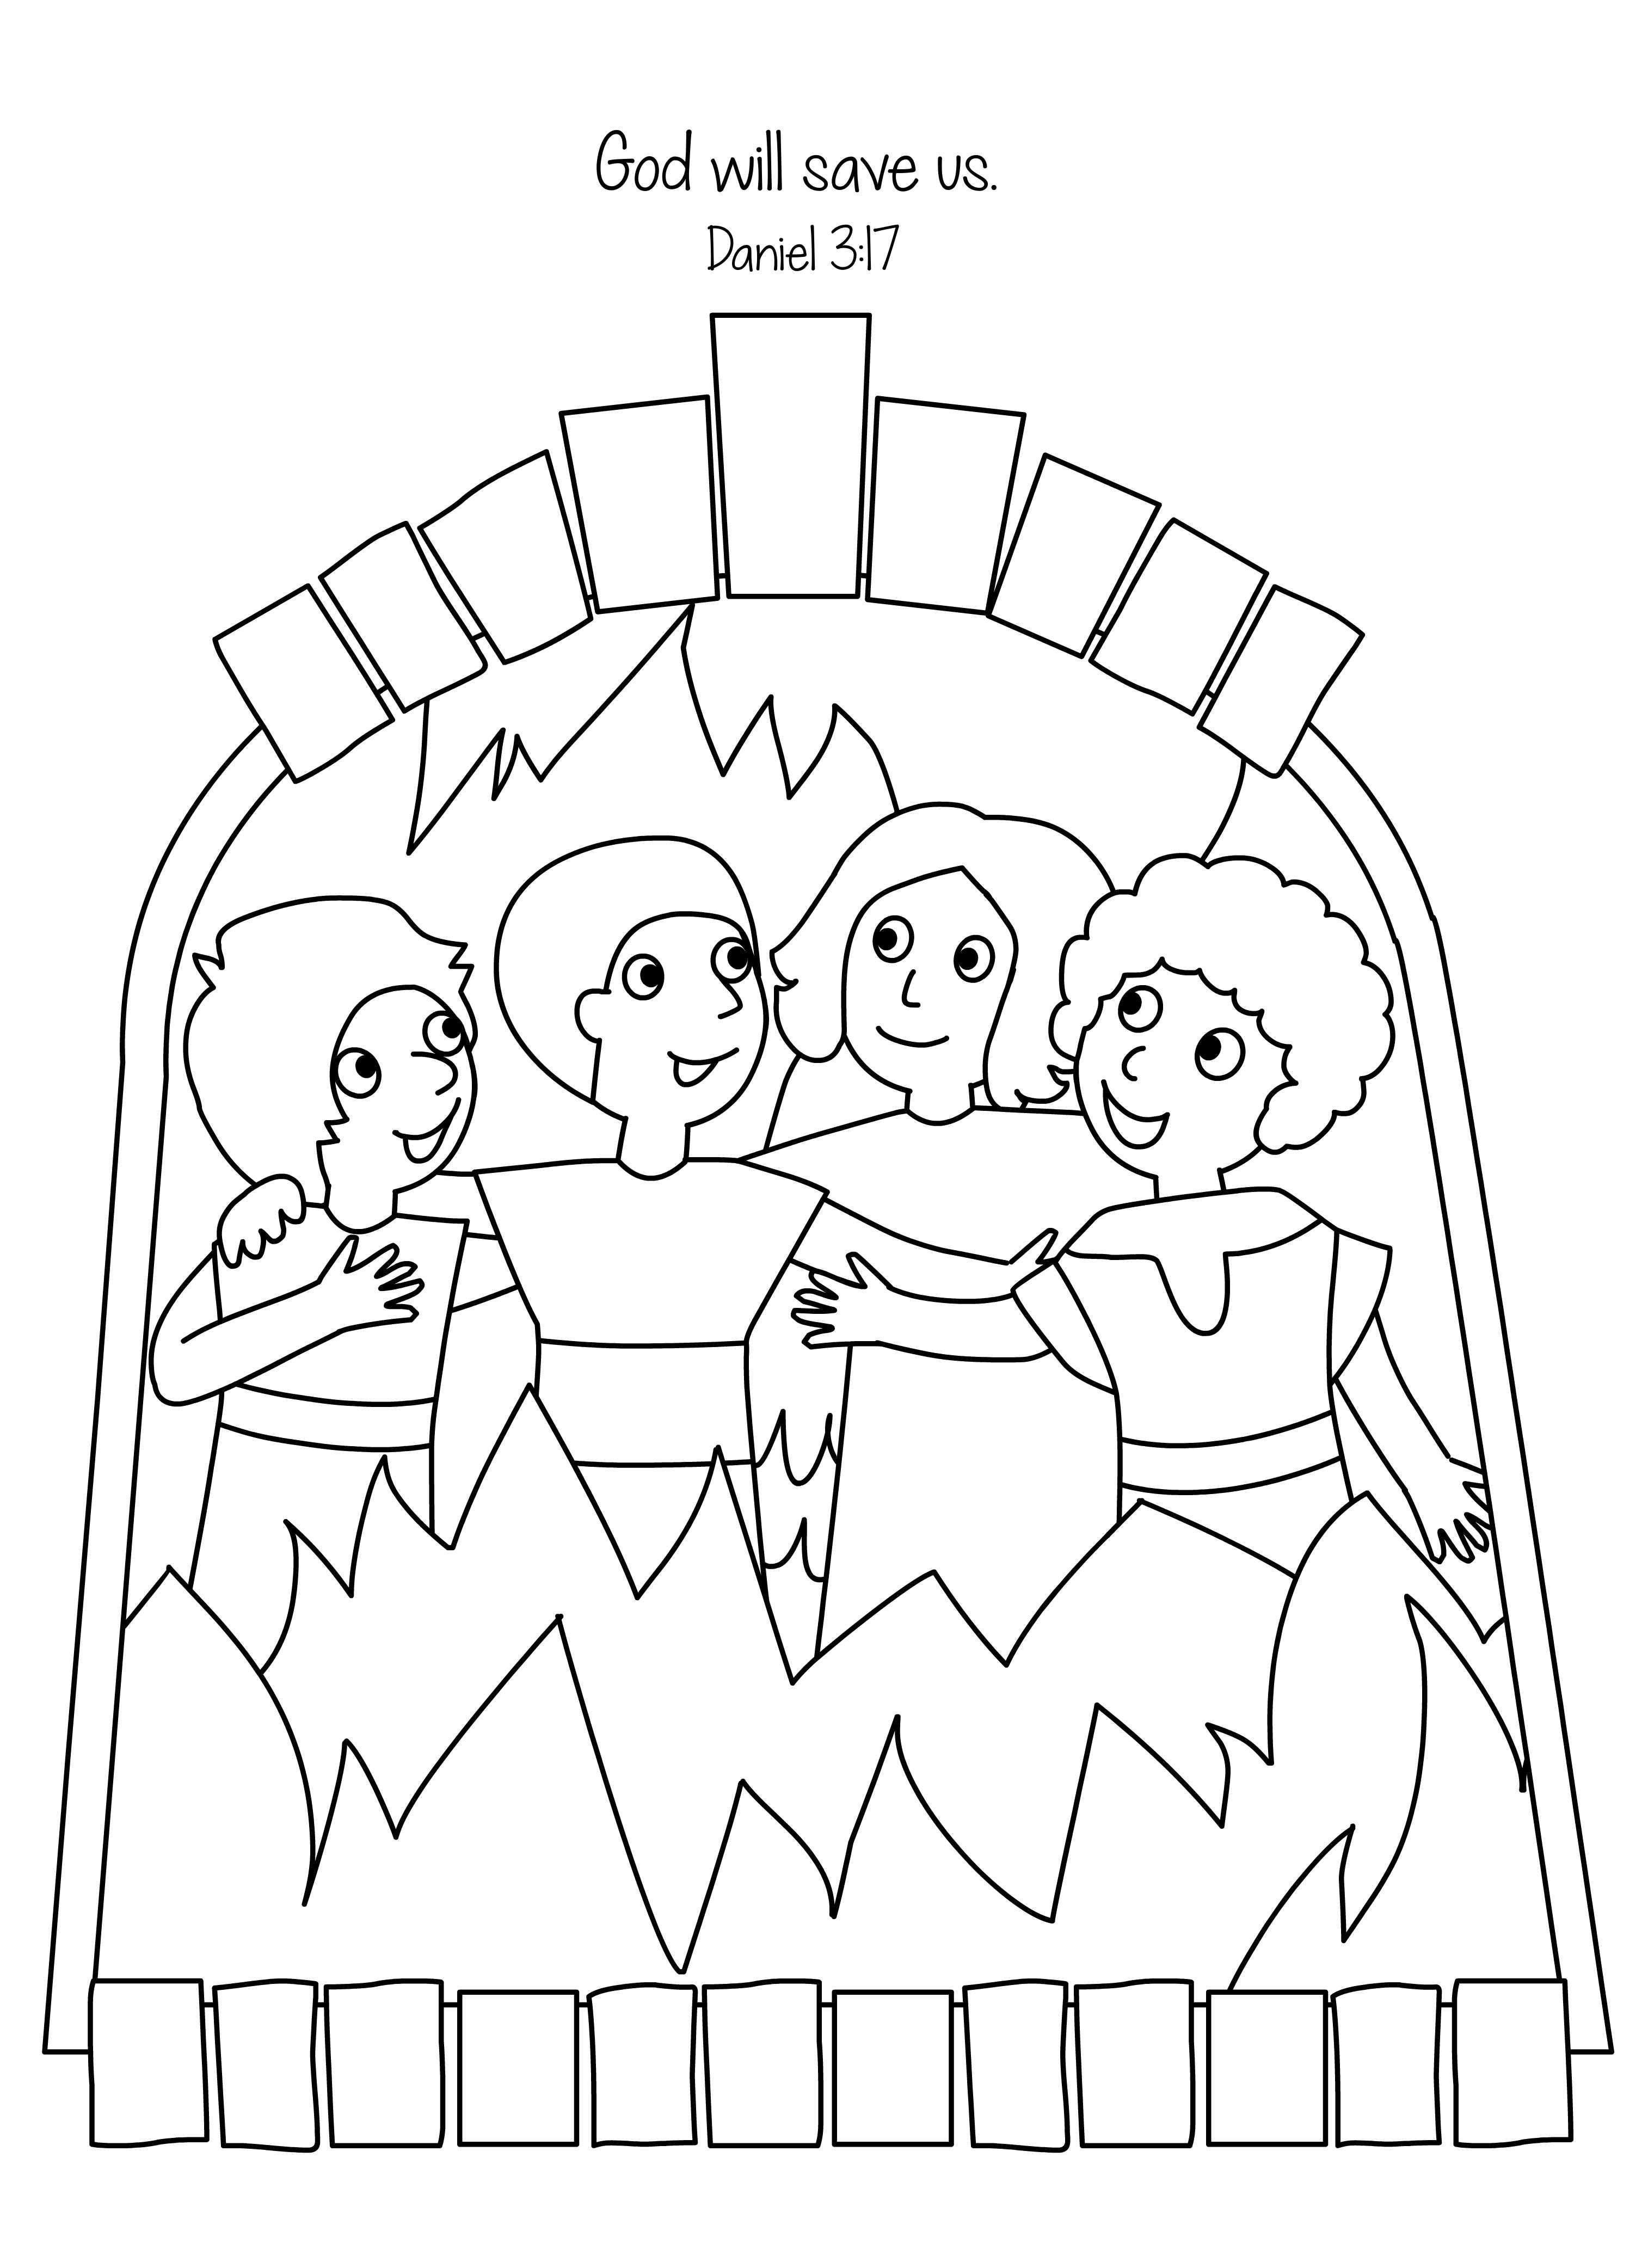 Amazing Fiery Furnace Coloring Page - Shadrach Meshach And Abednego ...